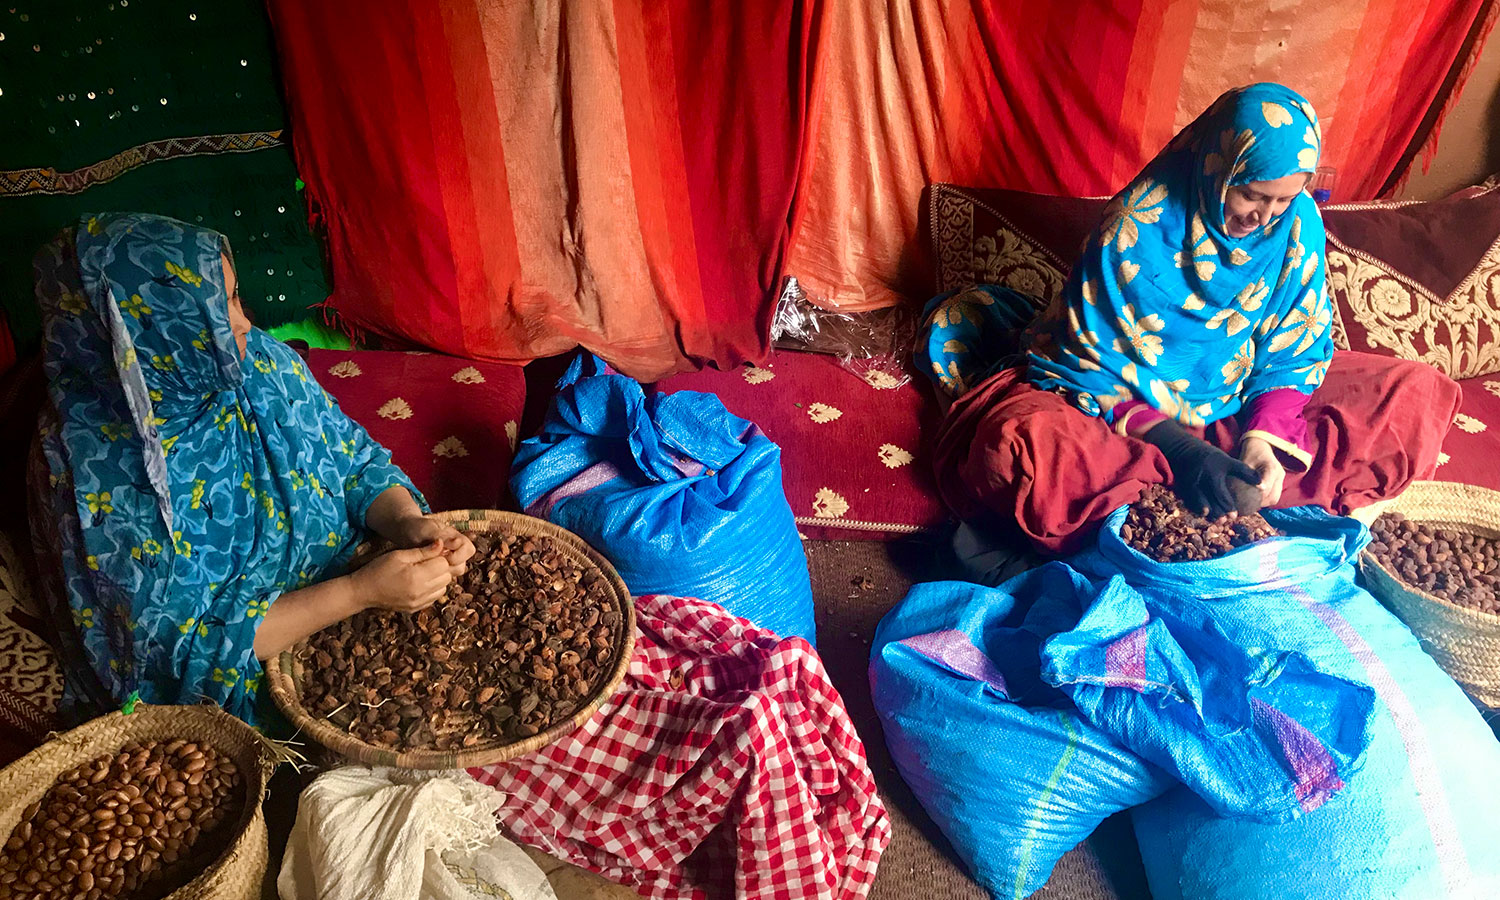 People's-Choice_1st-Place_Samantha-Buckenmaier_8.PC__Morocco__Women-shelling-argan-tree-shells-in-order-to-make-homemade-argan-oil